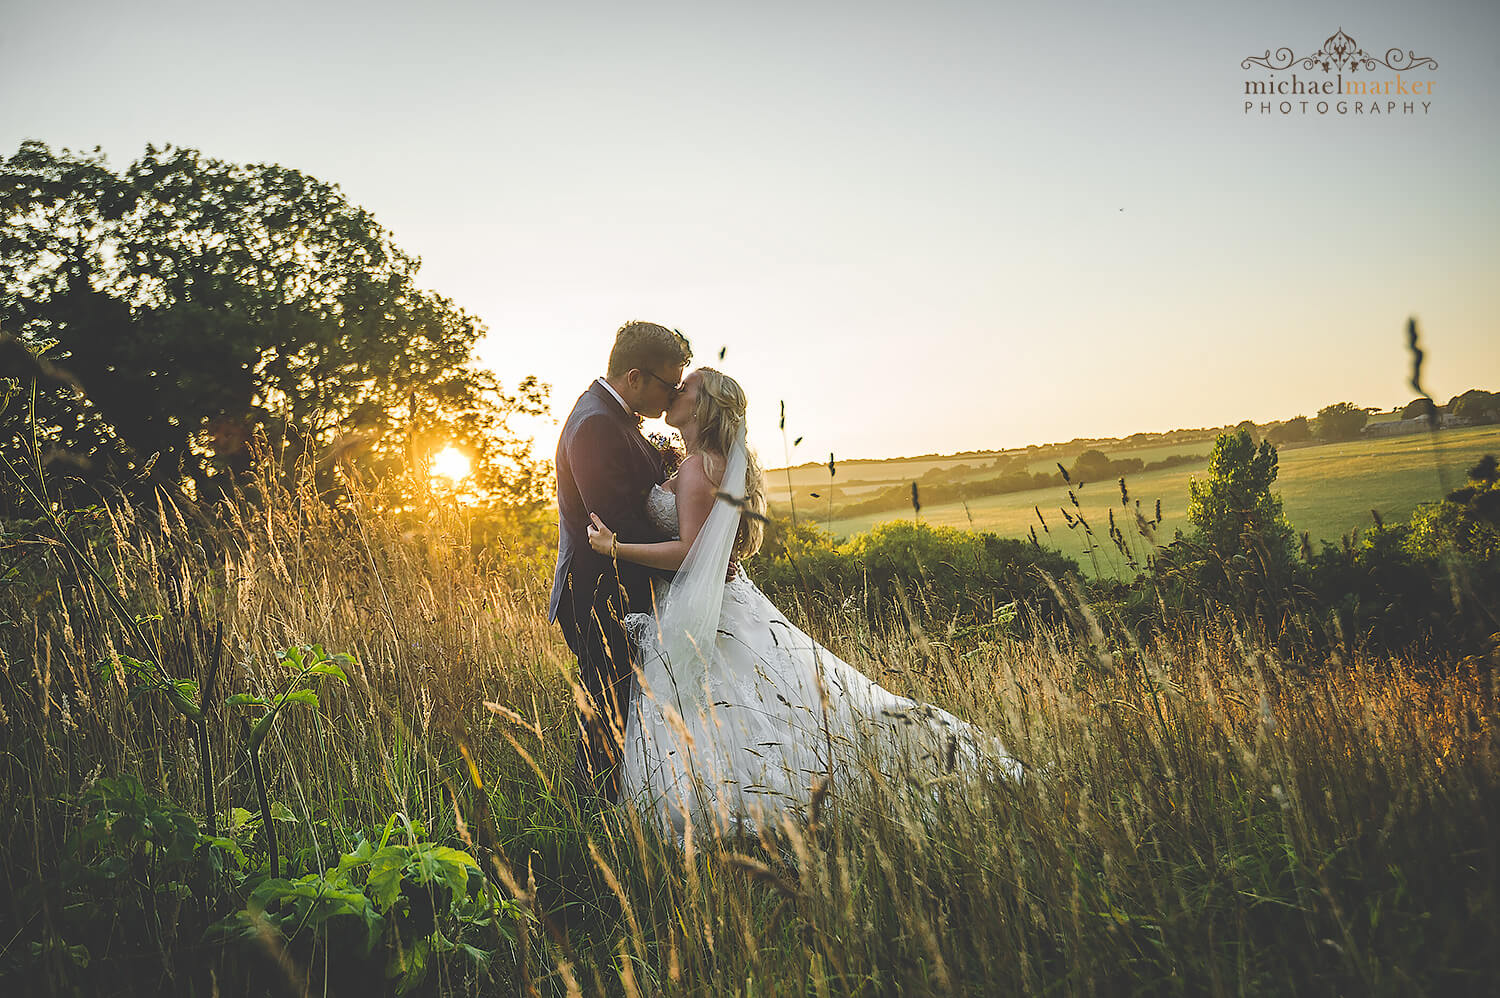 Summer Cornwall wedding at beautiful Trevenna Barns